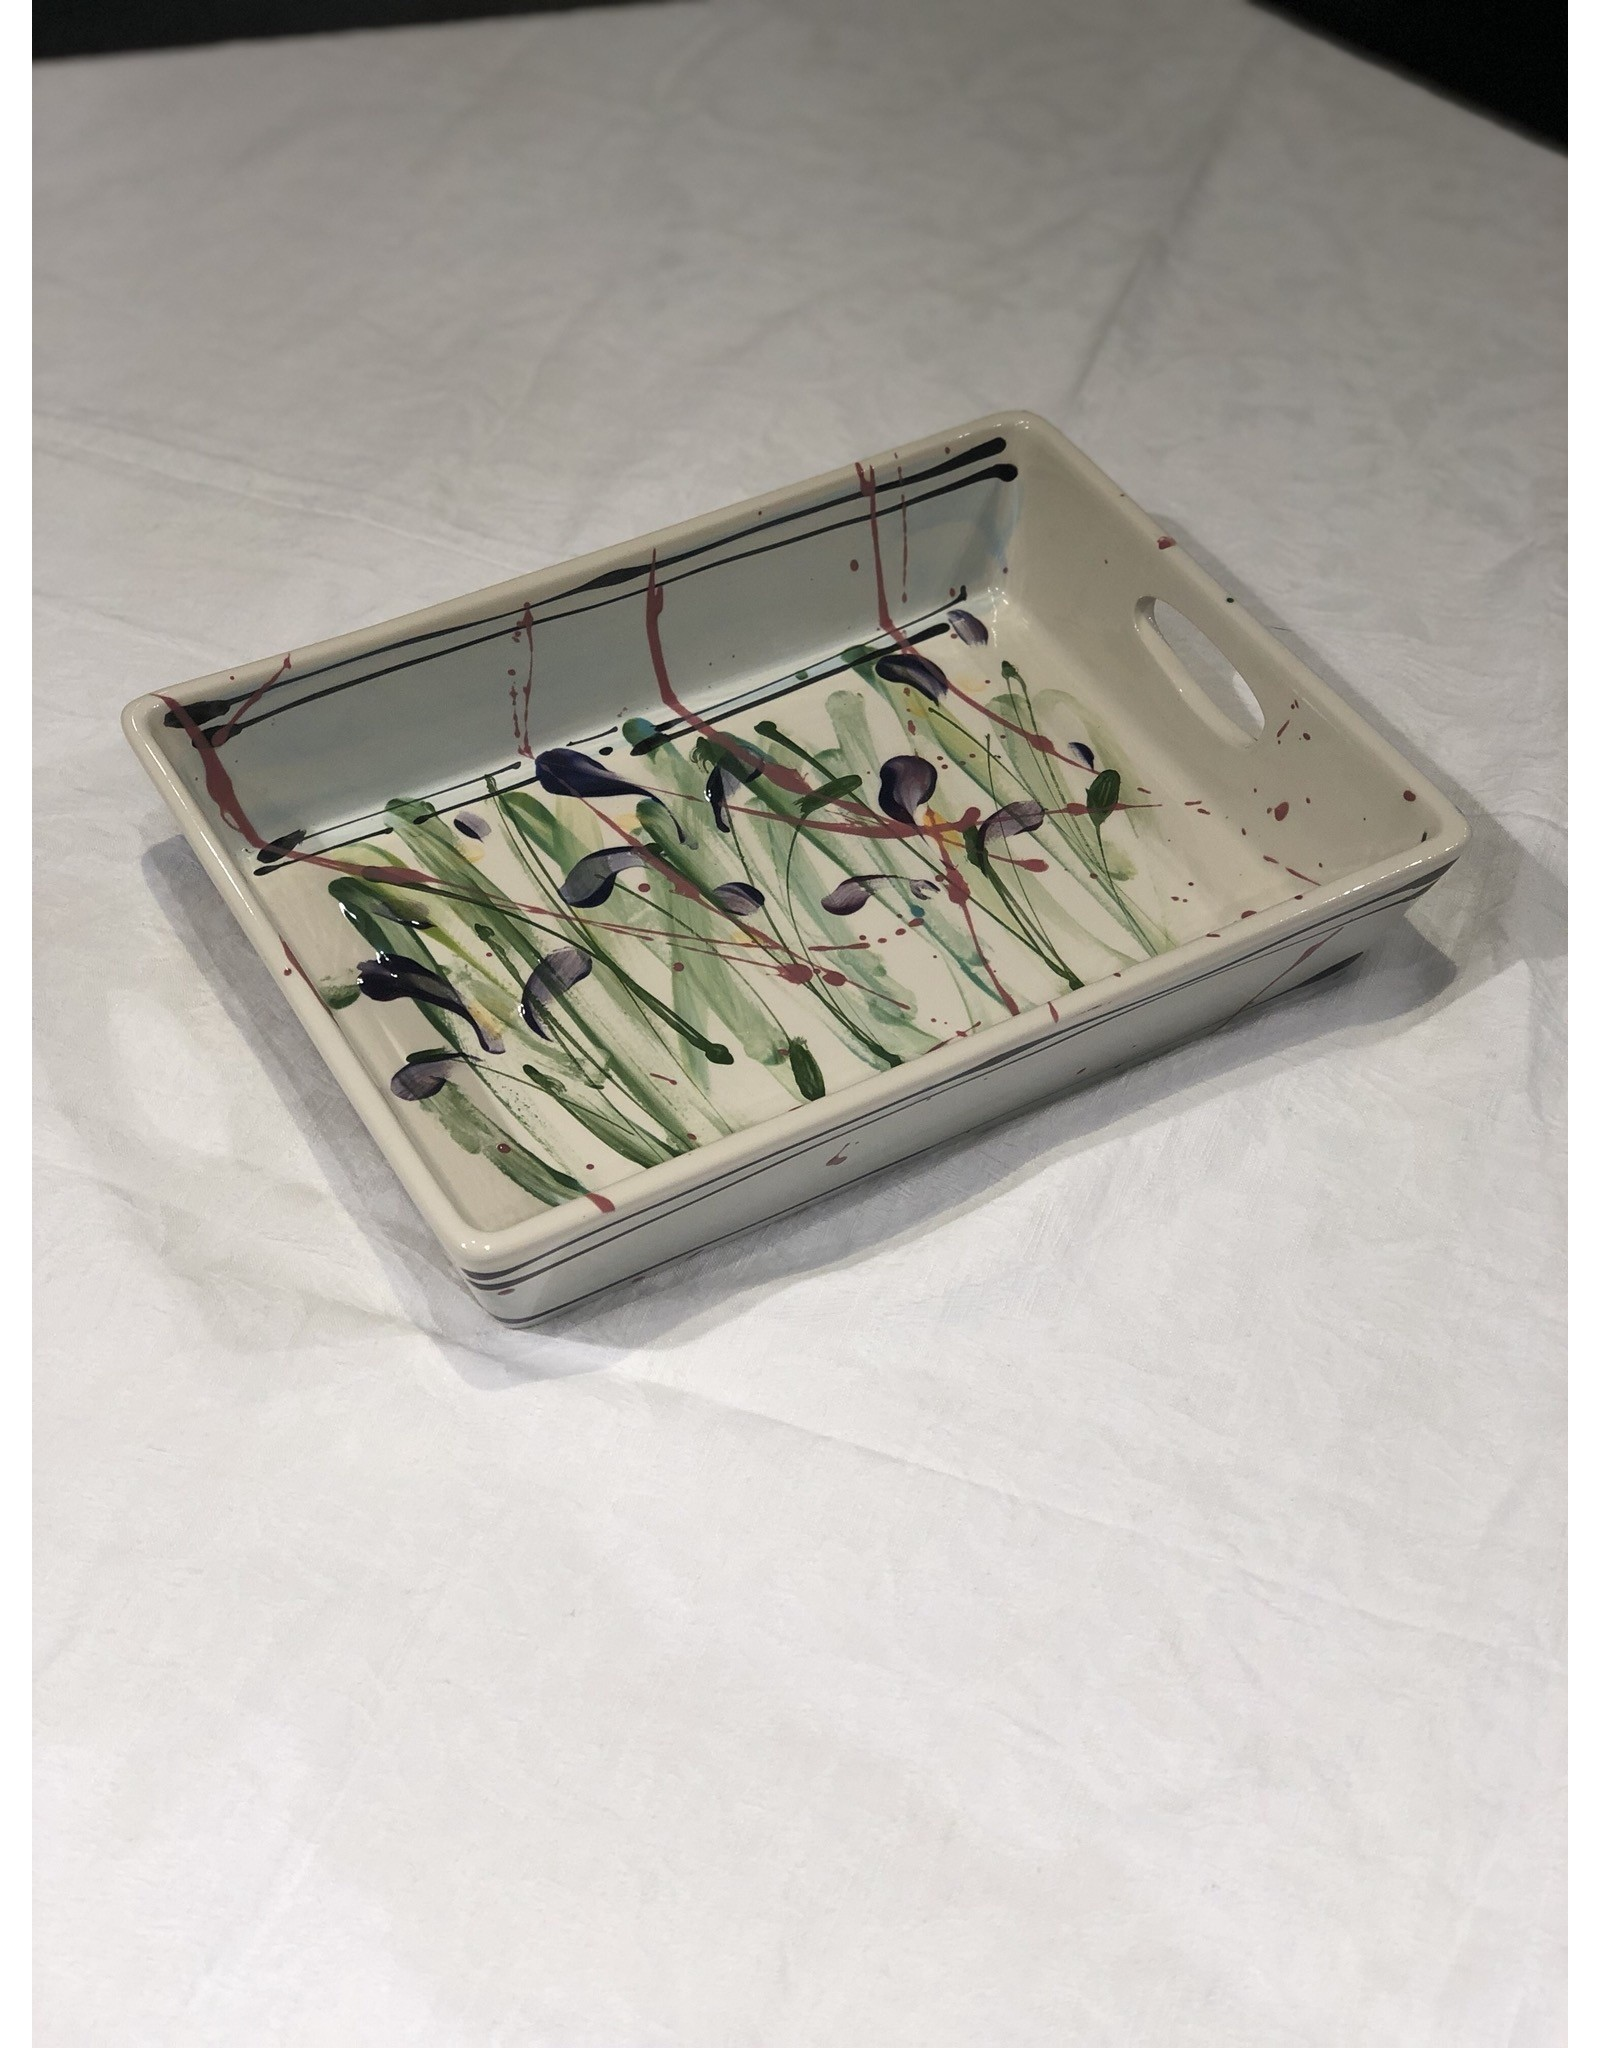 Donna Toohey Donna Toohey Cut-Out Tray